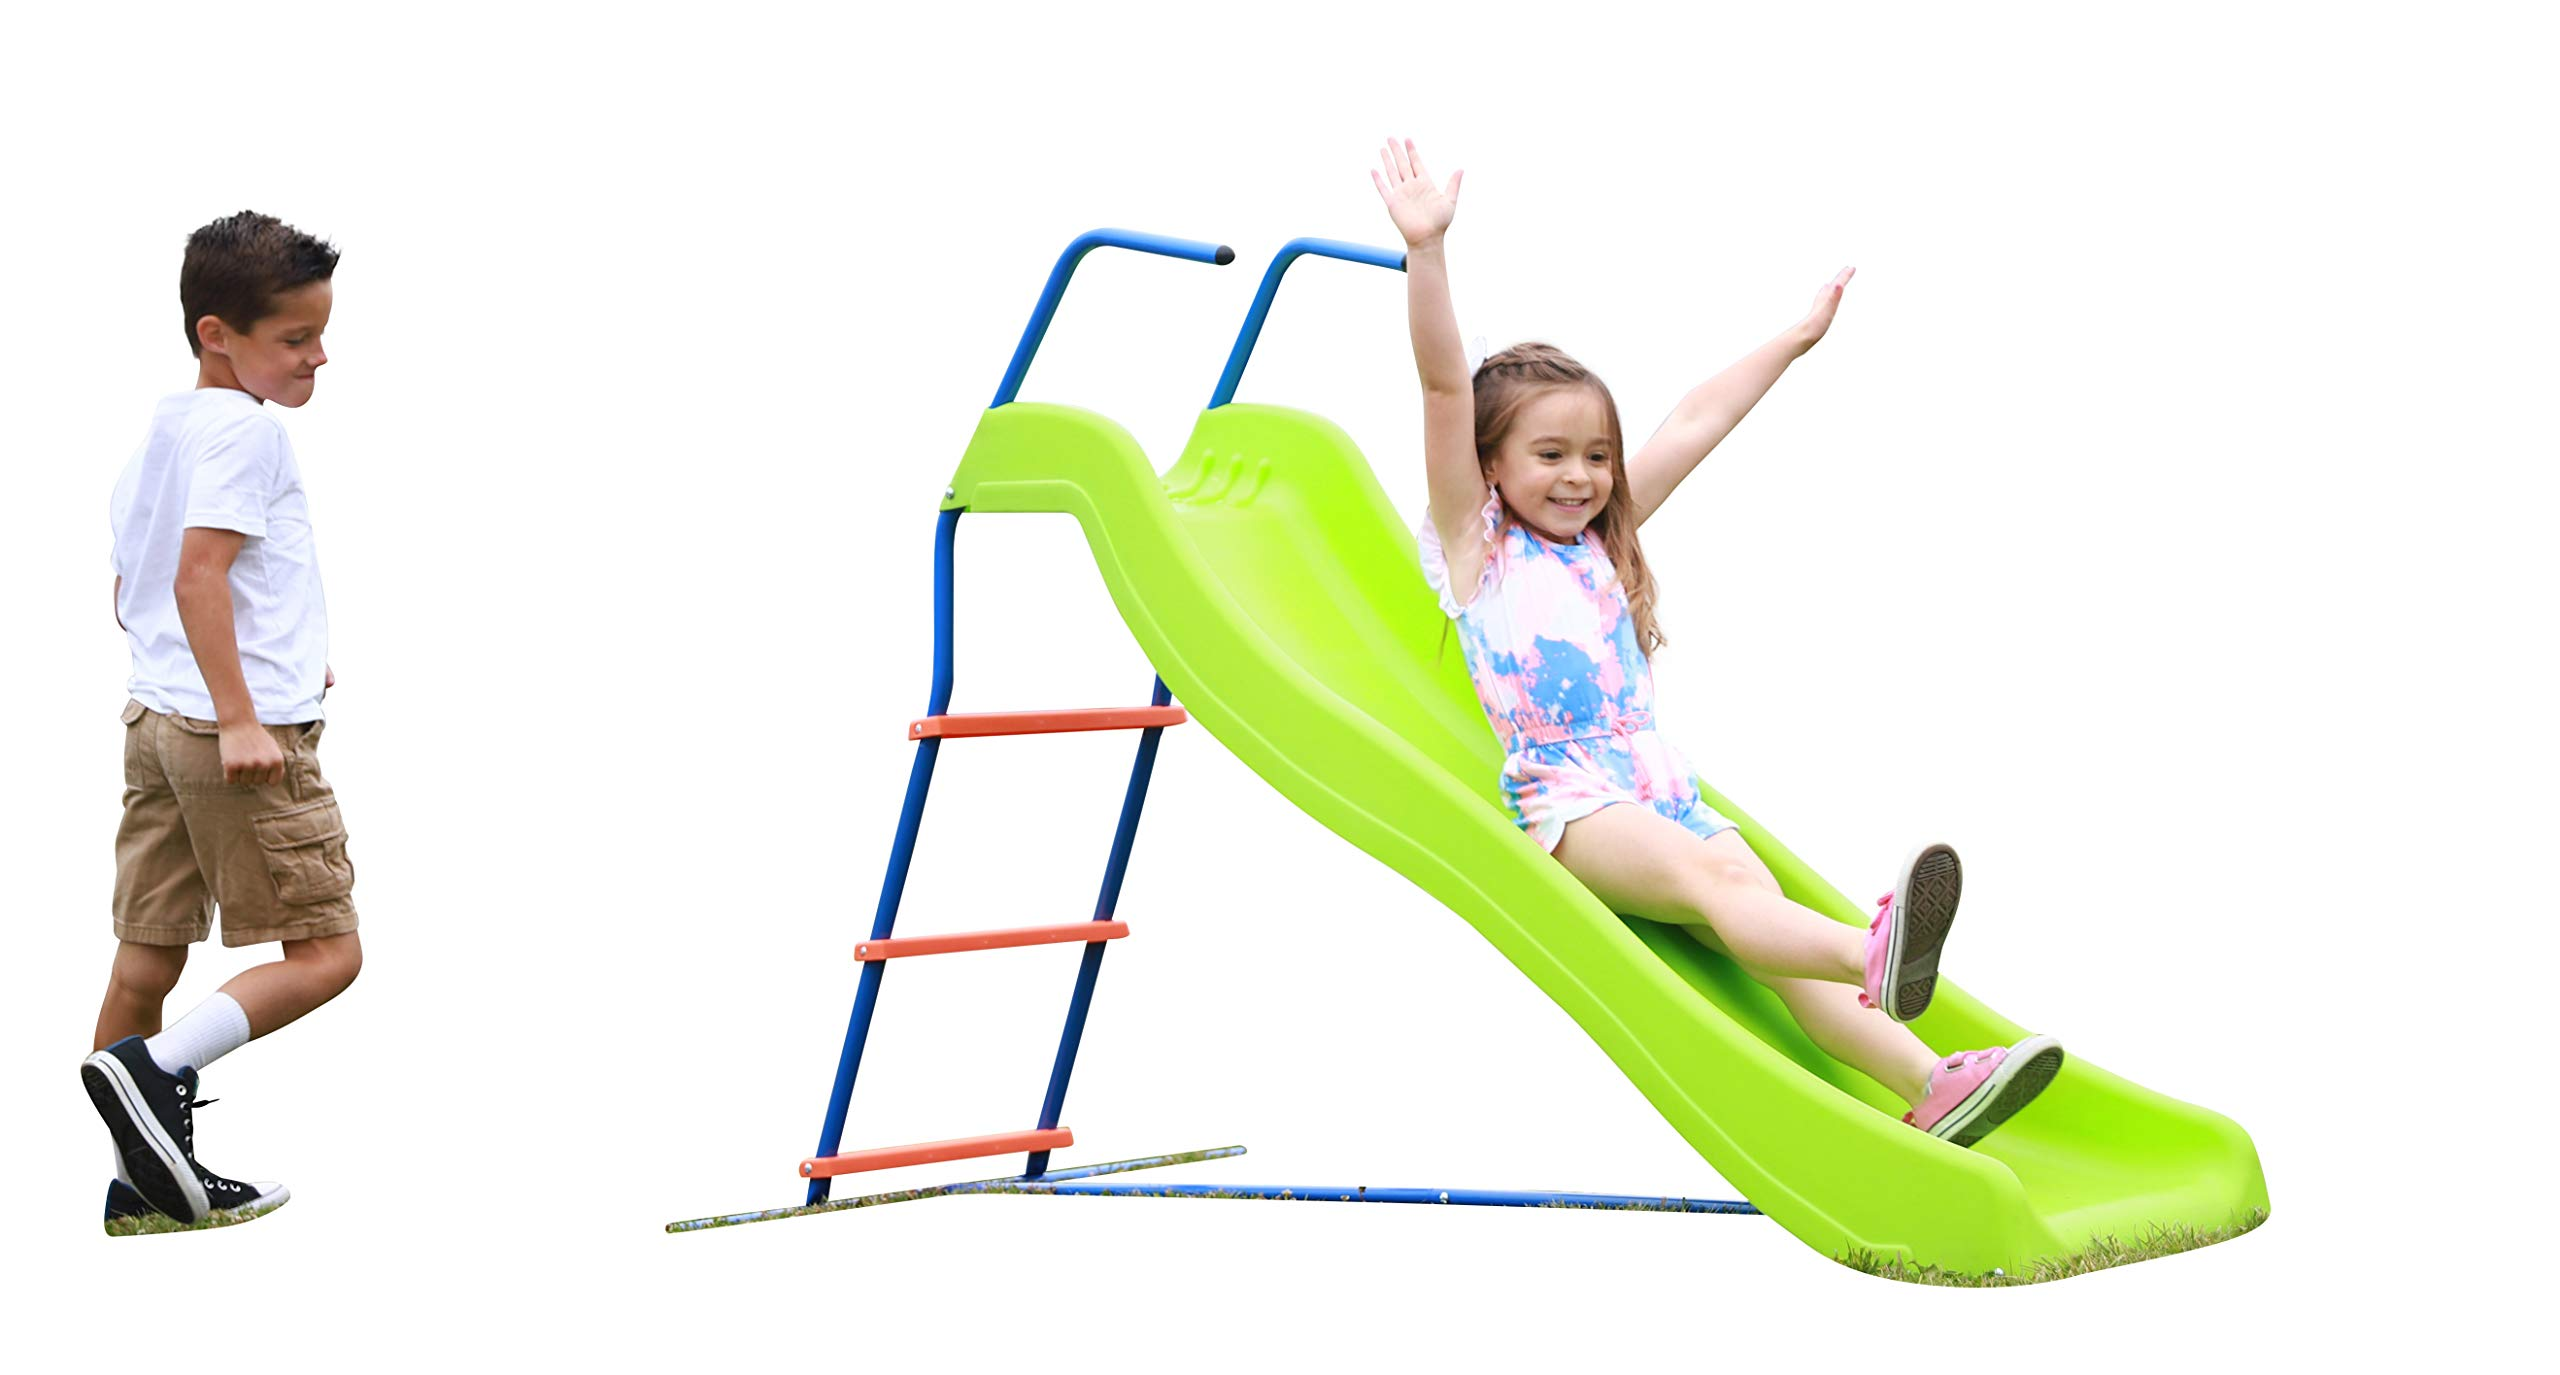 Kids 6ft Outdoor Playground Slide: Freestanding Play Equipment Playset for Children. Perfect Indoor Outdoor Backyard Entertainment. Maximum Child Safety Standards. Easy Assembly. 3 4 5 6 Year Old Fun! by SLIDEWHIZZER